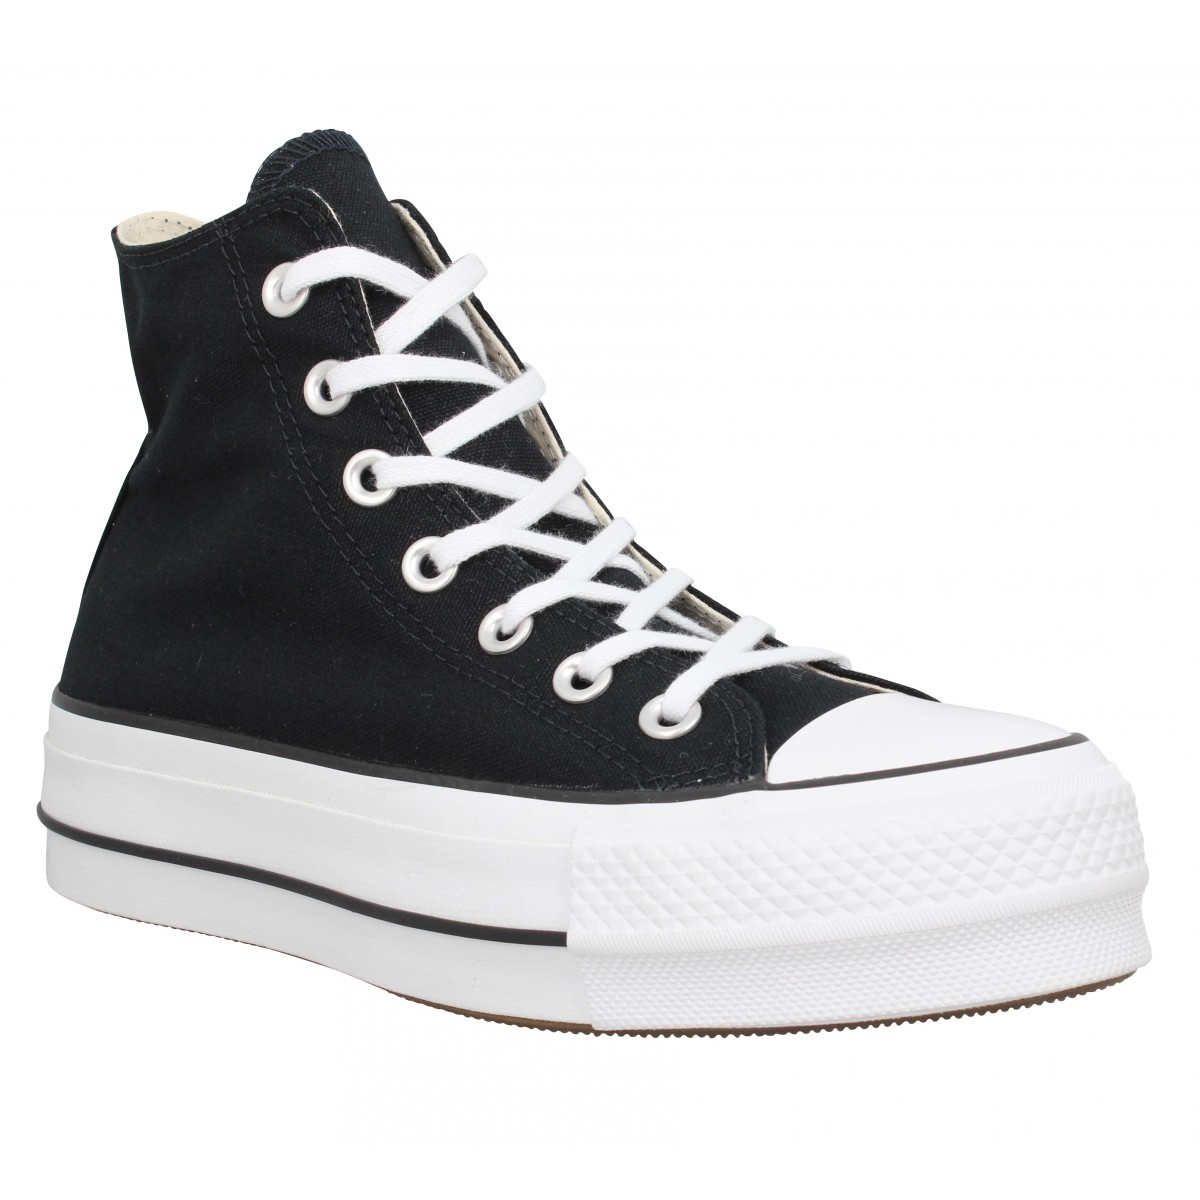 Baskets CONVERSE Chuck Taylor All Star Lift Hi toile Femme Noir